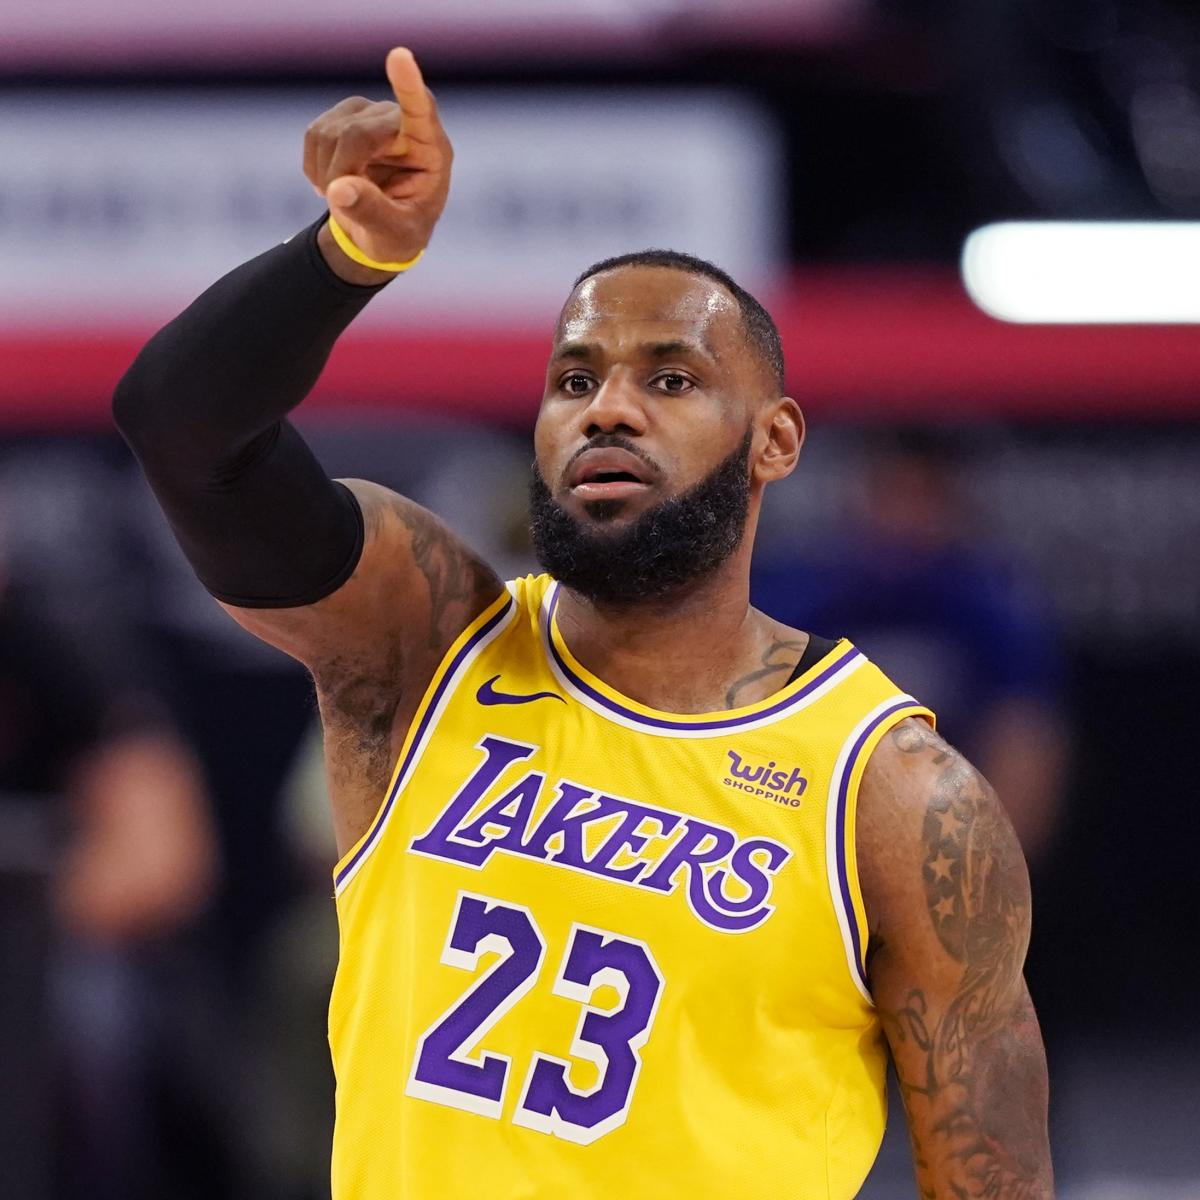 LeBron James Talks Exchange That Led to Fans' Ejections During Lakers vs. Hawks